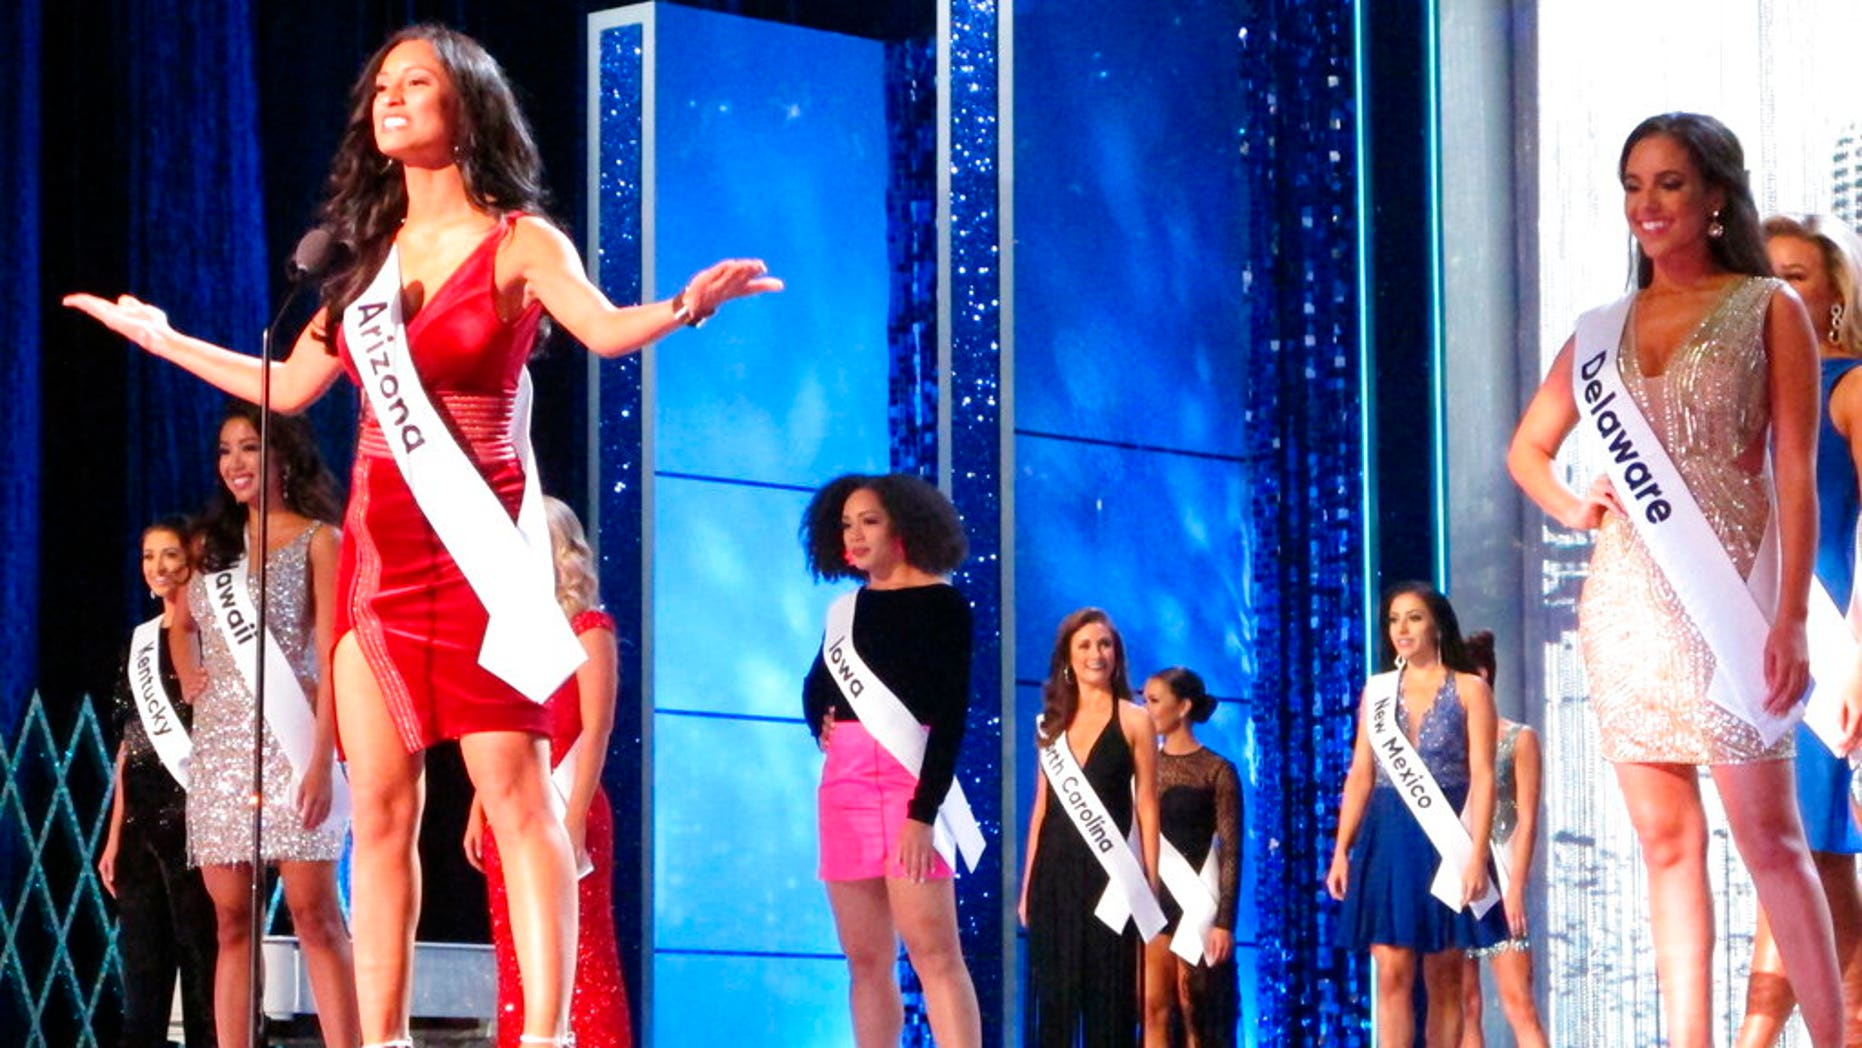 Miss Arizona Isabel Ticlo introduces herself at the start of the third and final night of preliminary competition at the Miss America competition in Atlantic City, N.J., earlier this year. (Associated Press)